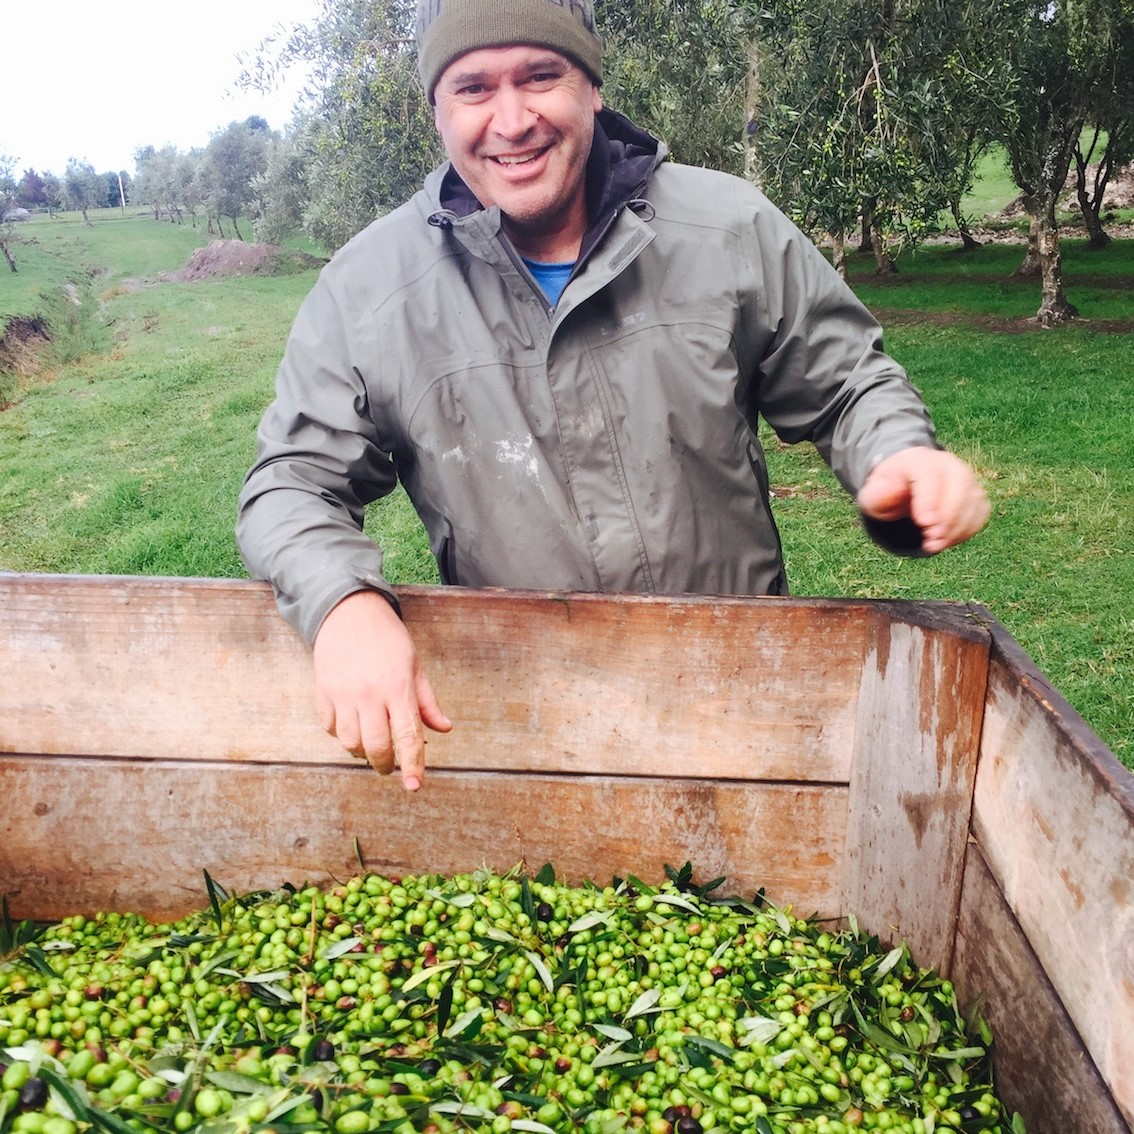 Graham looks pretty happy with the harvest